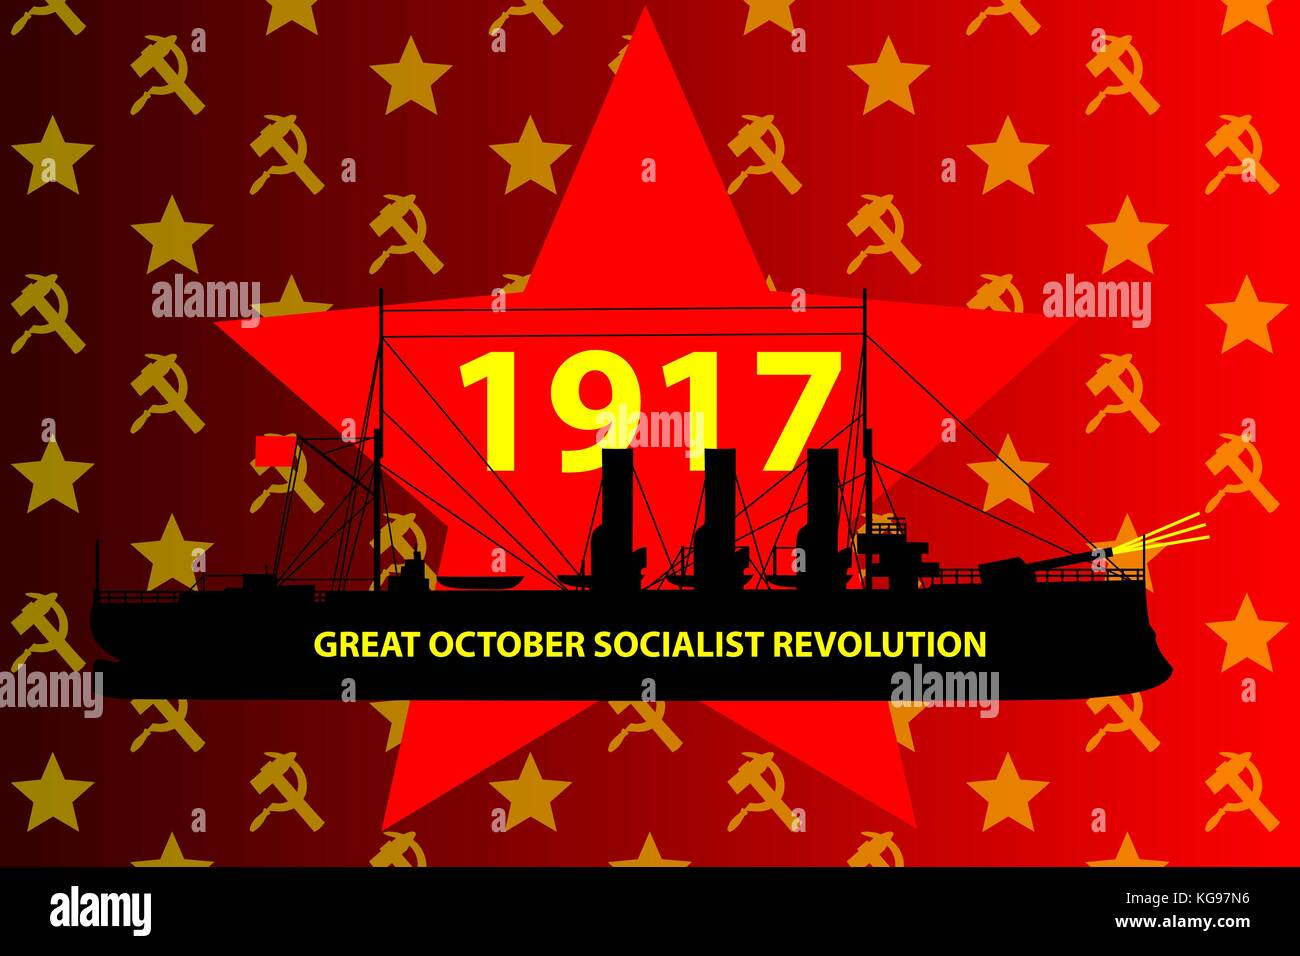 Russian Revolution, Shot of the insurgent cruiser Aurora - Russian revolution began, Great October Socialist Revolution, - Stock Vector